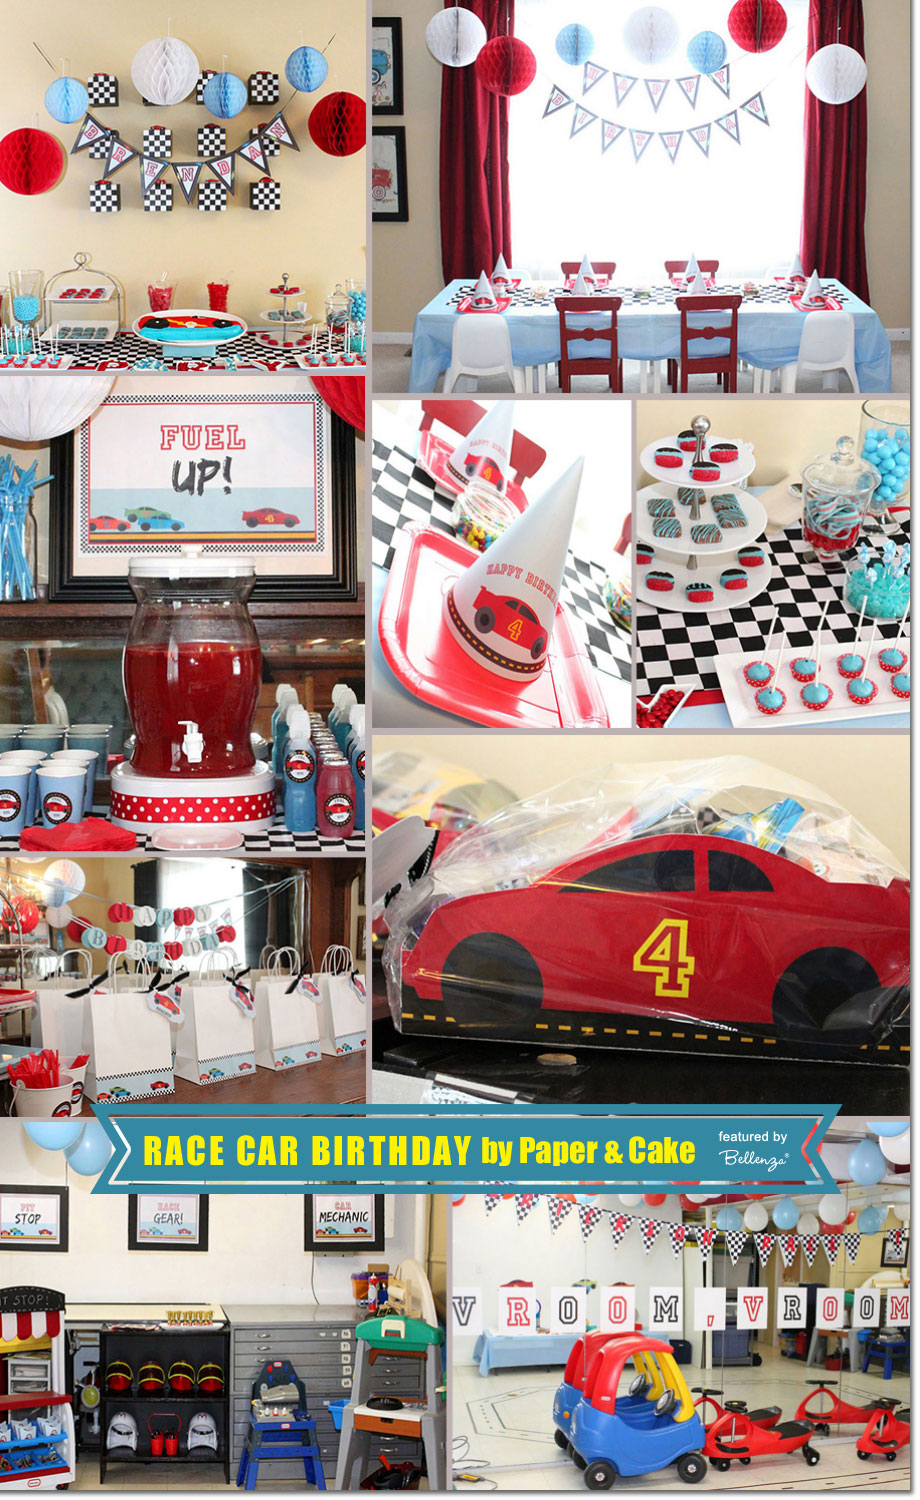 Race Car Birthday, from Paper and Cake